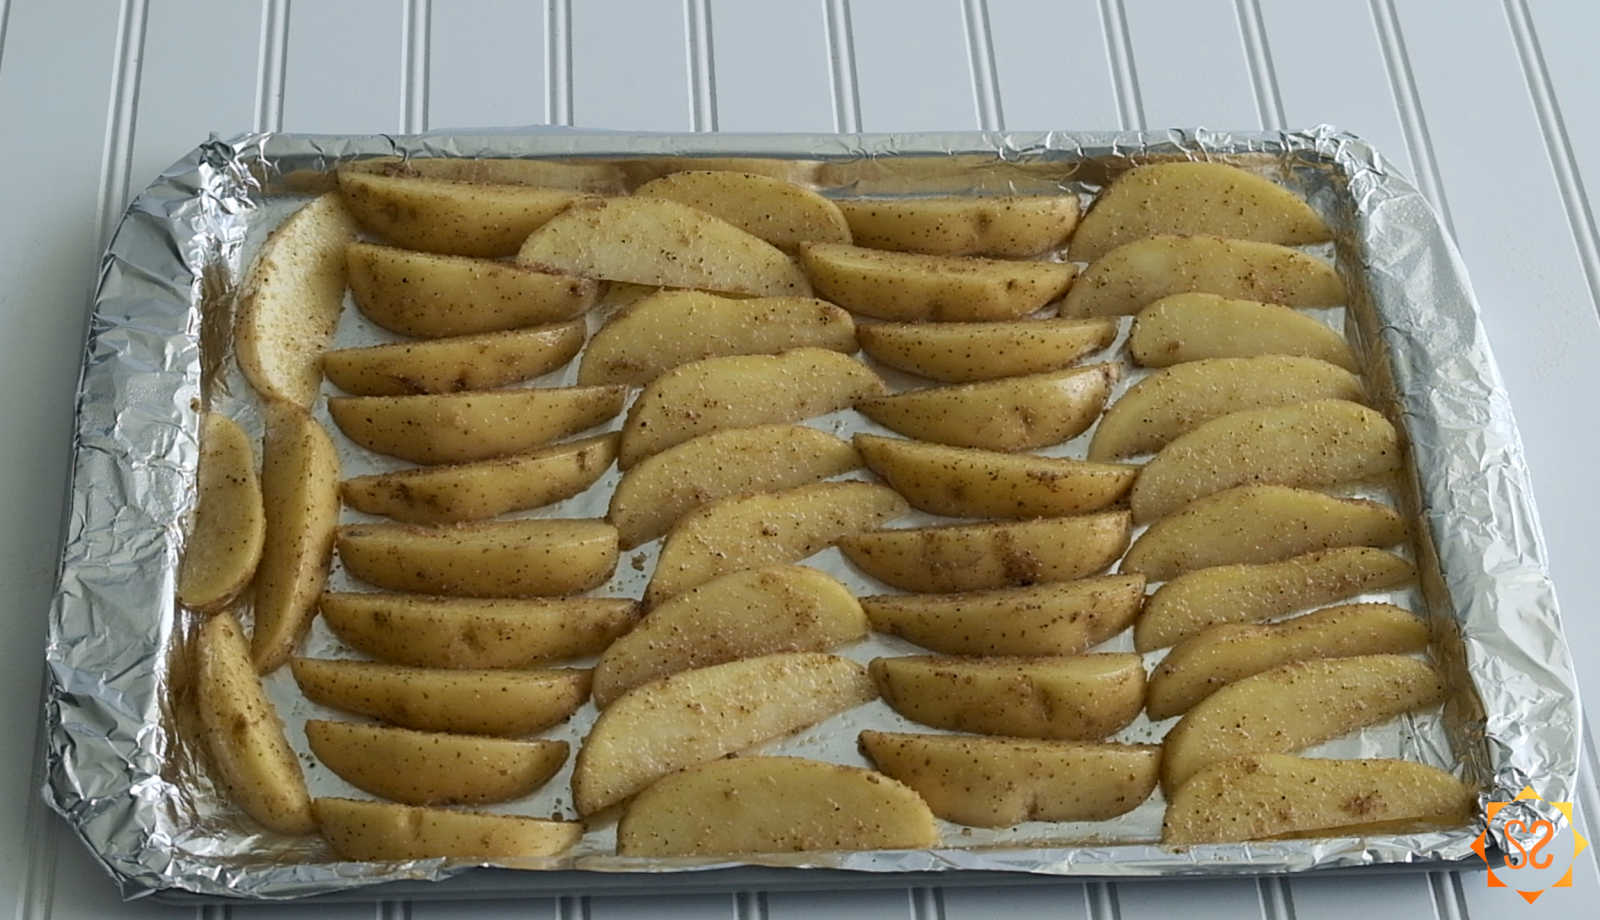 Potato wedges on a lined and oiled baking sheet